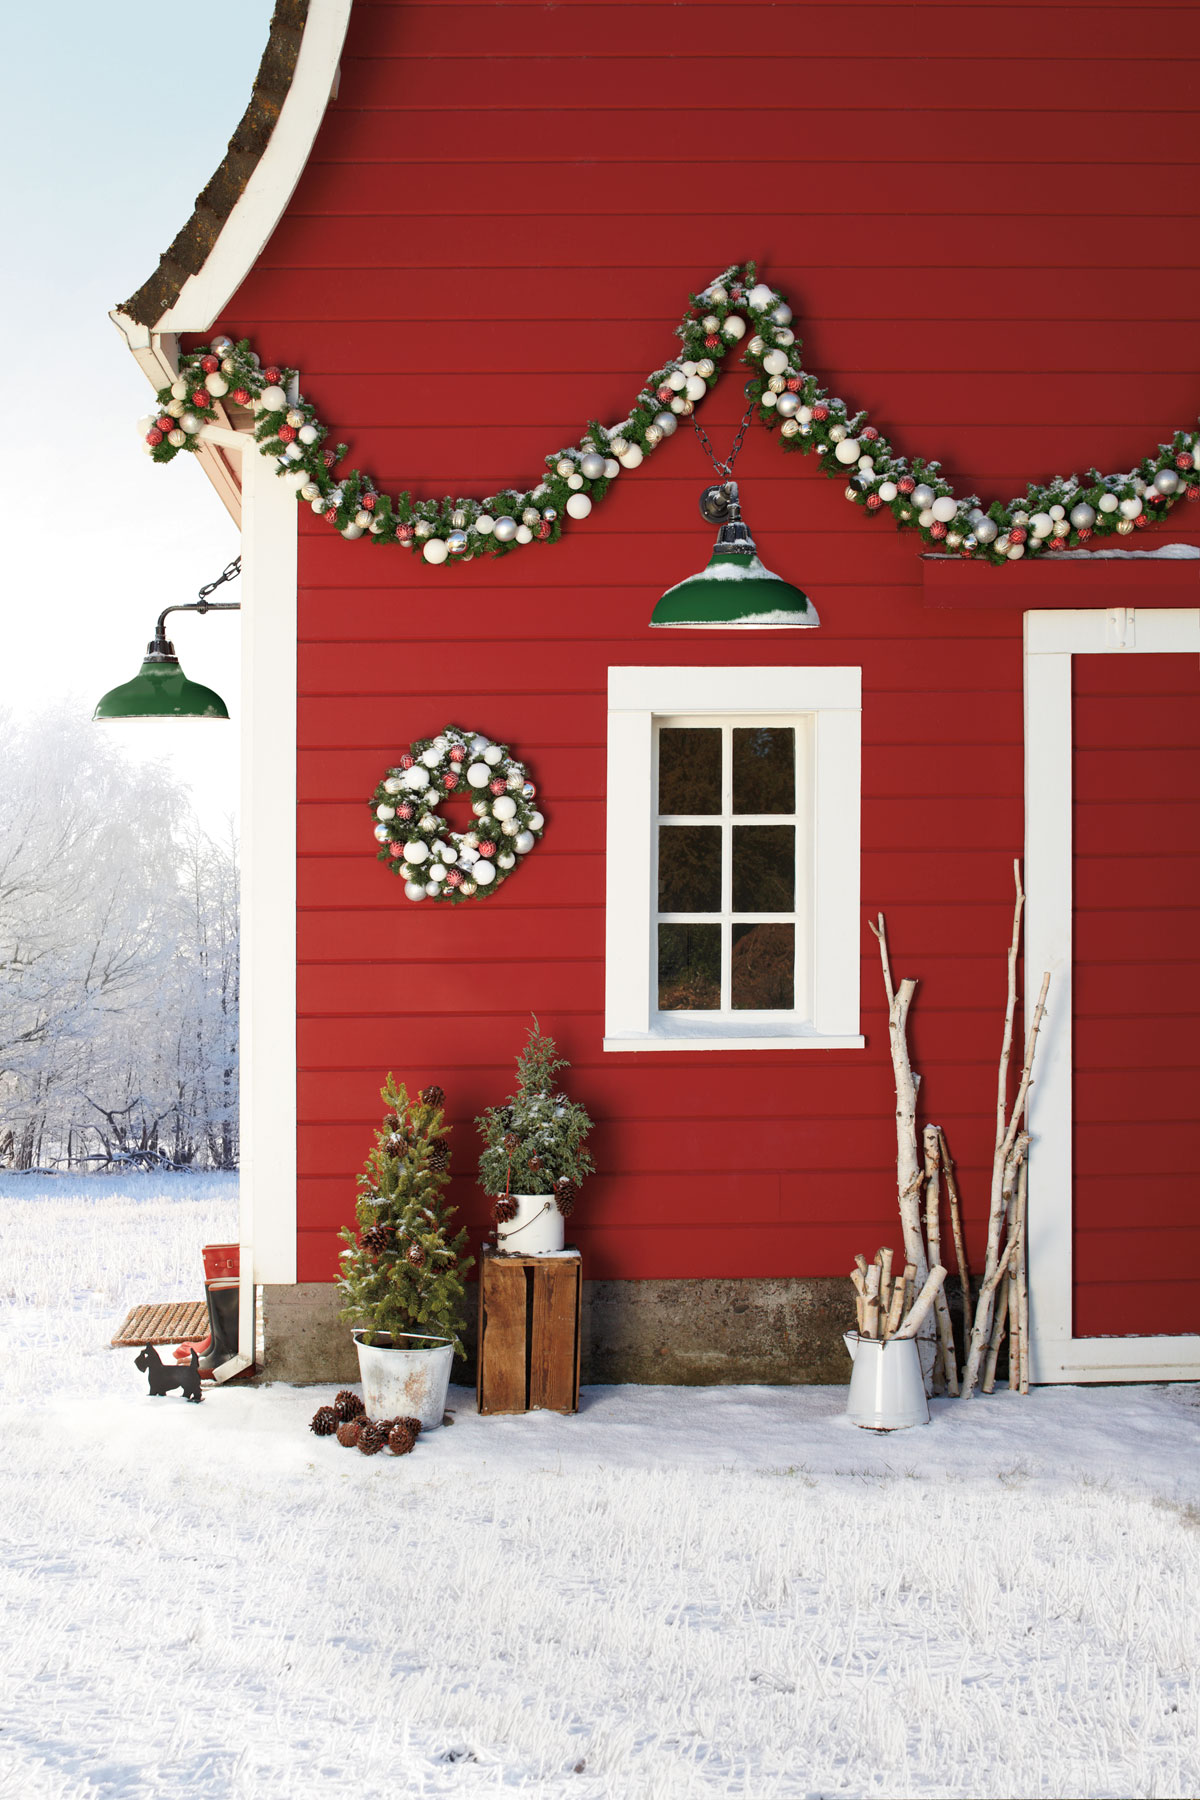 27 outdoor christmas decorations ideas for outside Christmas decorations for house outside ideas